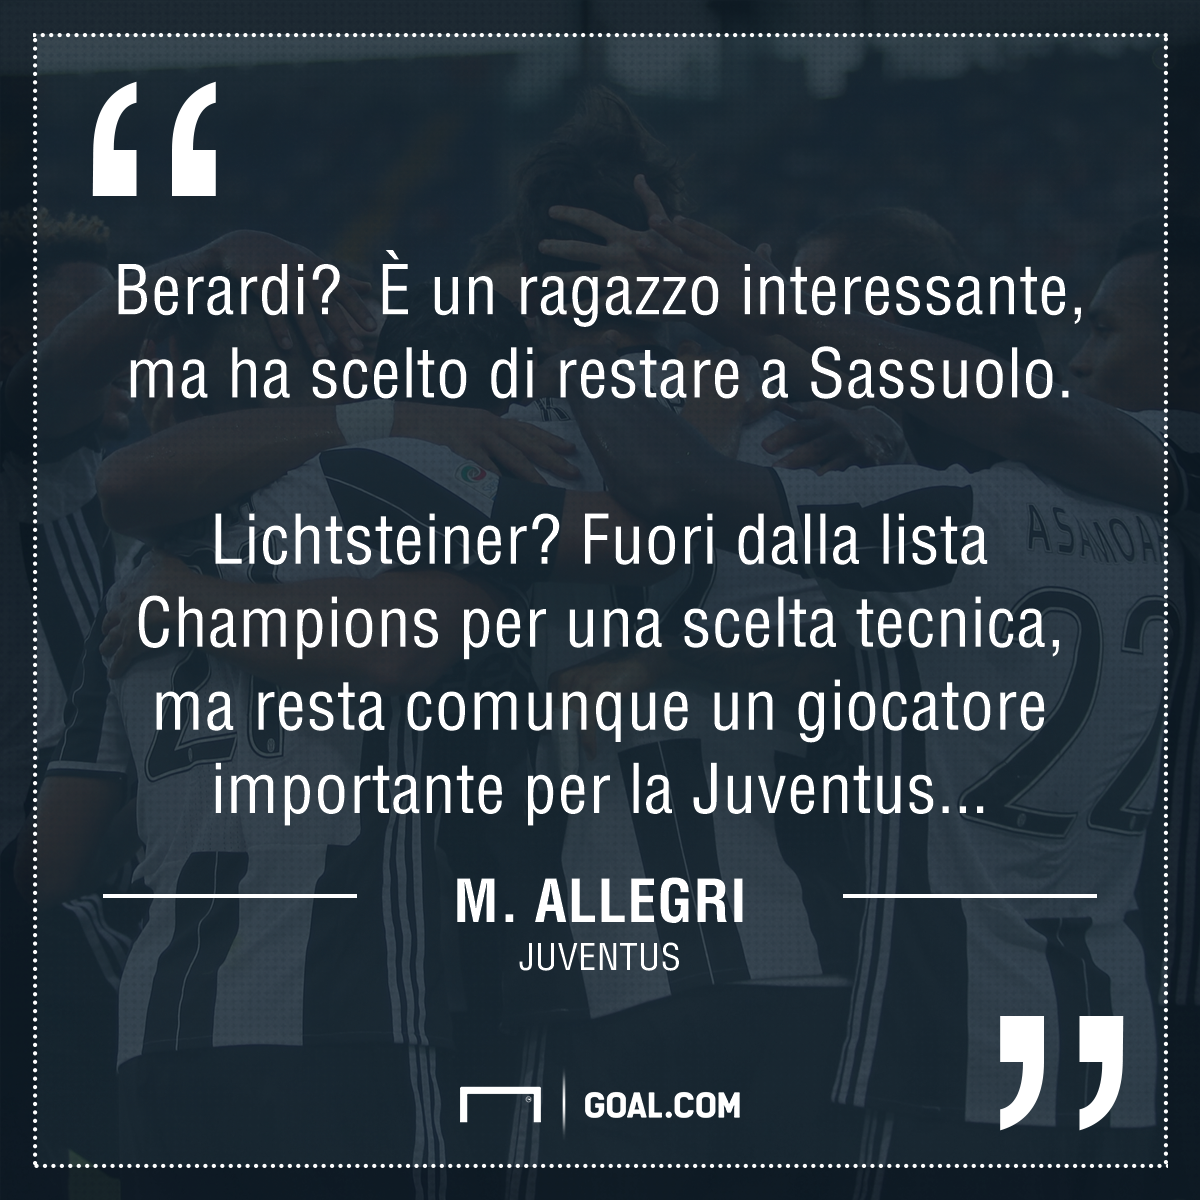 http://images.performgroup.com/di/library/goal_it/f0/20/allegri-juventus_1q812z7wifu8u14xjdg4nmnk1k.png